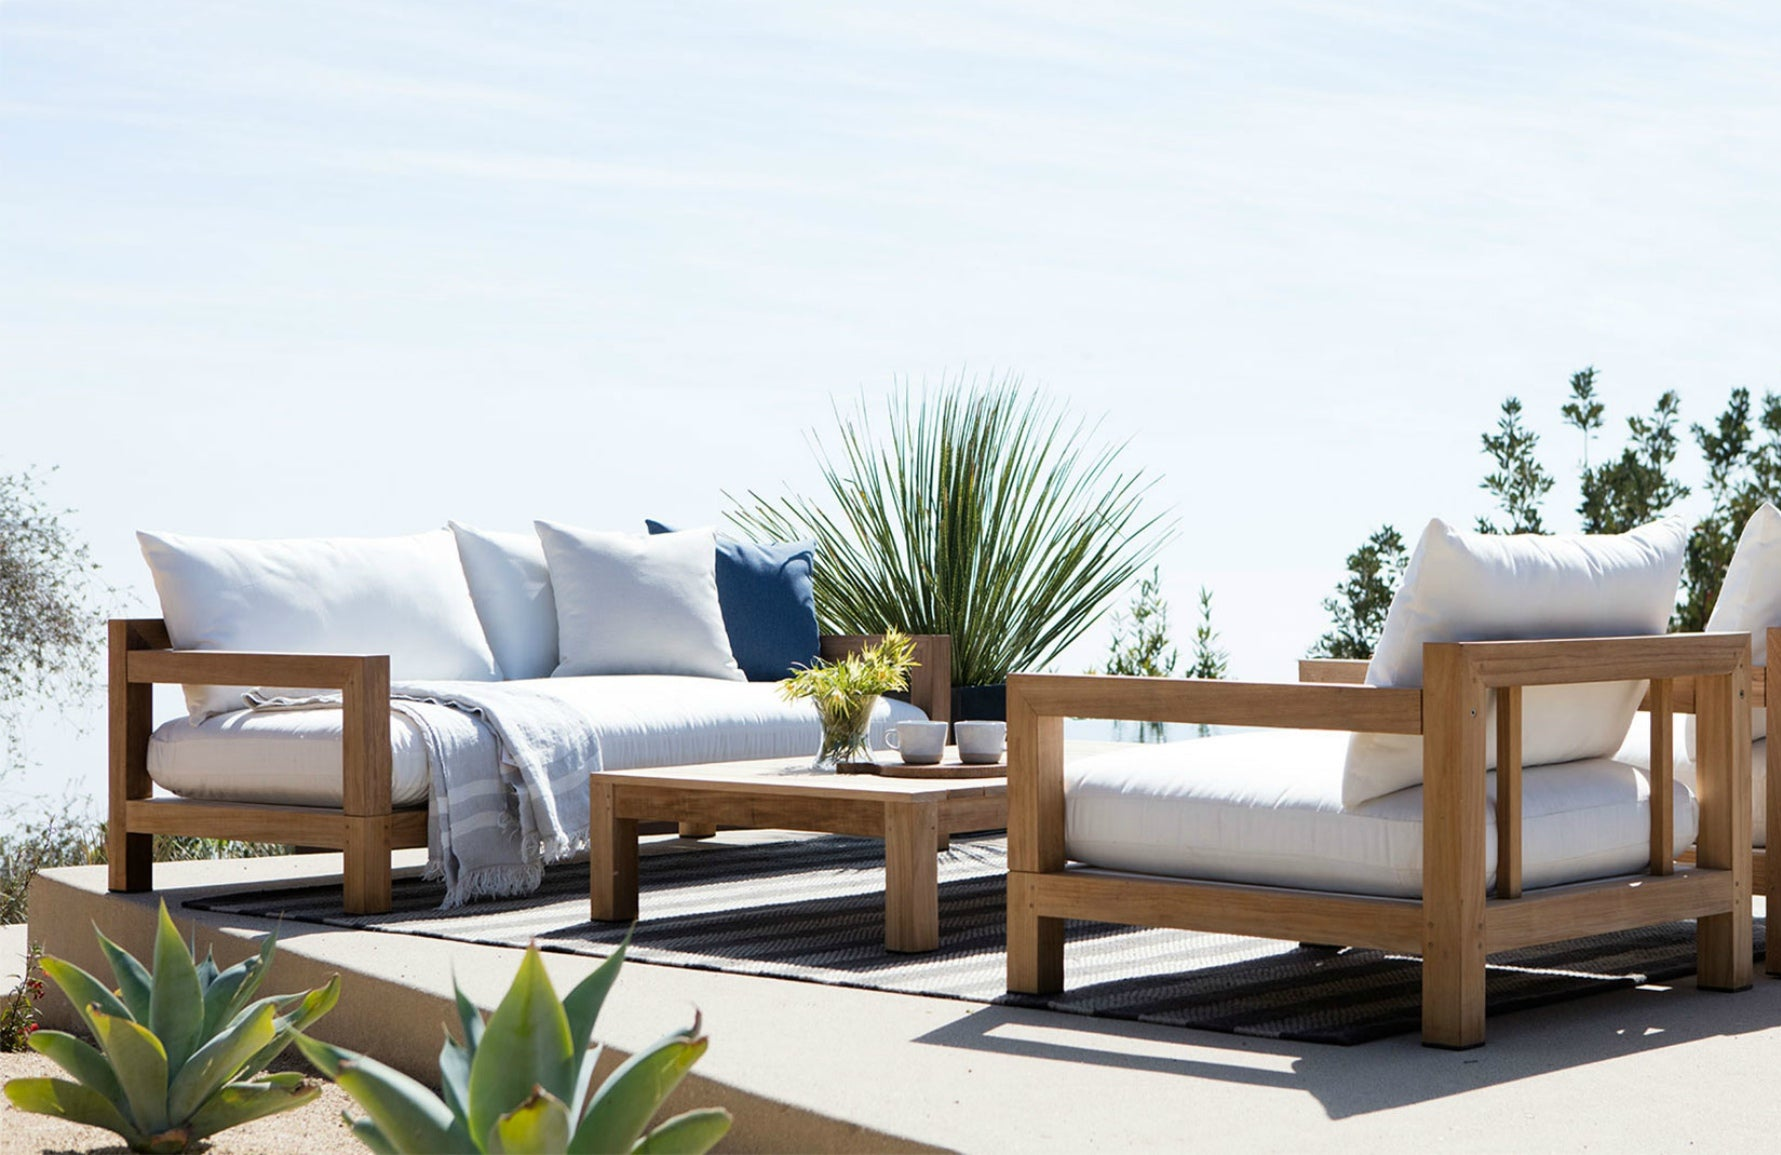 Luxury Garden Furniture | Shop Luxury Outdoor Sofas at LuxDeco.com